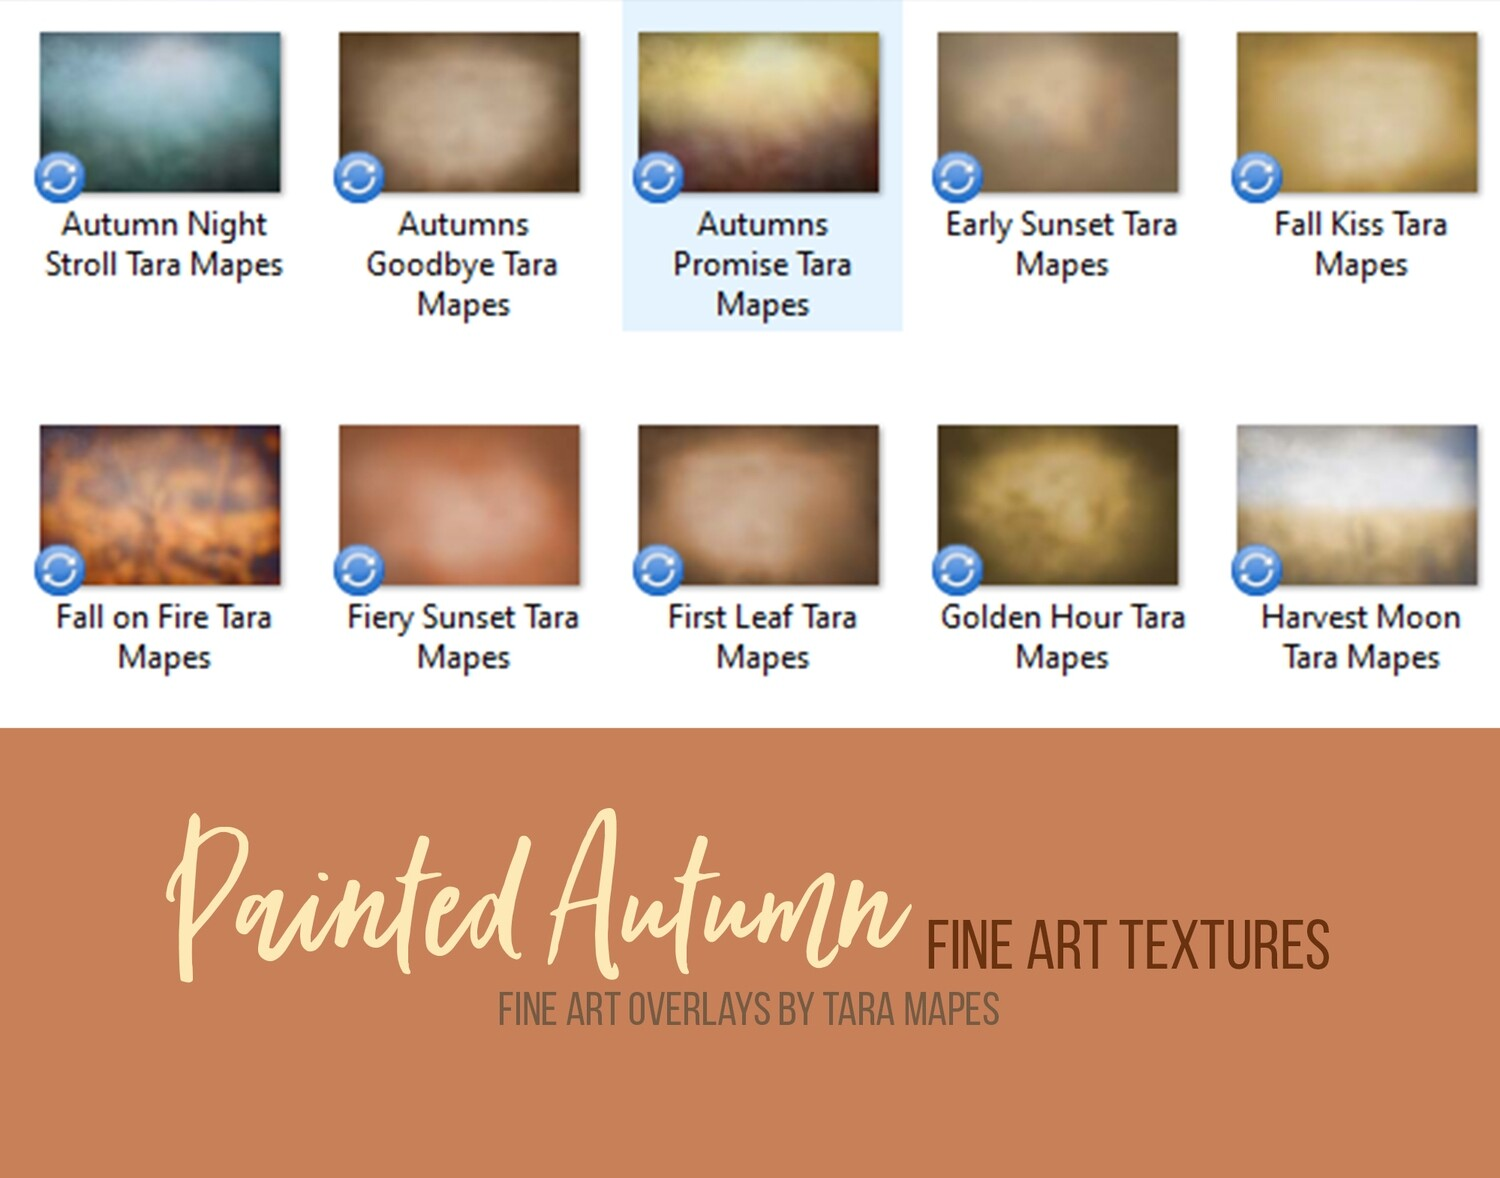 10 Painted Autumn Fine Art Textures -  Rich Fall Color Overlays - Texture Overlays -Photoshop Overlays Tara Mapes - Video Demo in Description